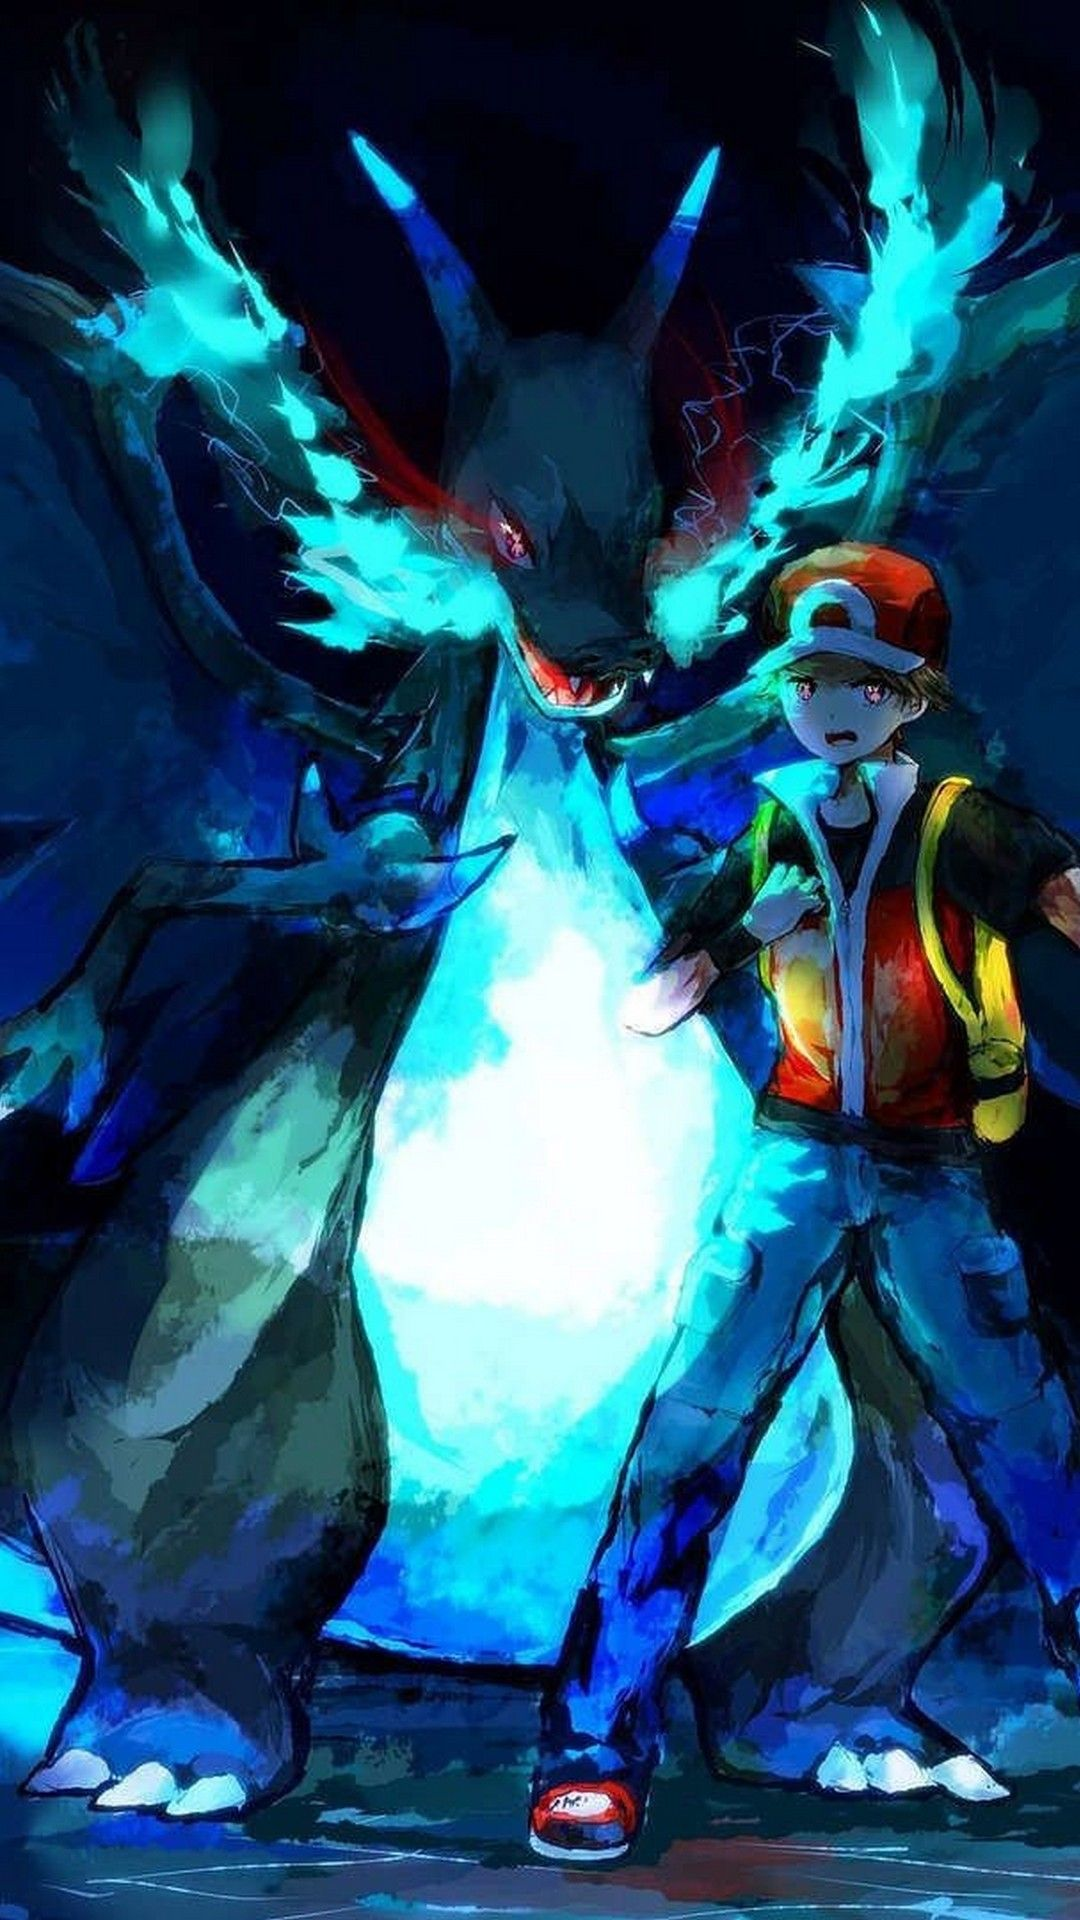 Pokemon Hd Wallpapers For Android Best Android Wallpapers Pokemon Trainer Red Pokemon Pokemon Charizard